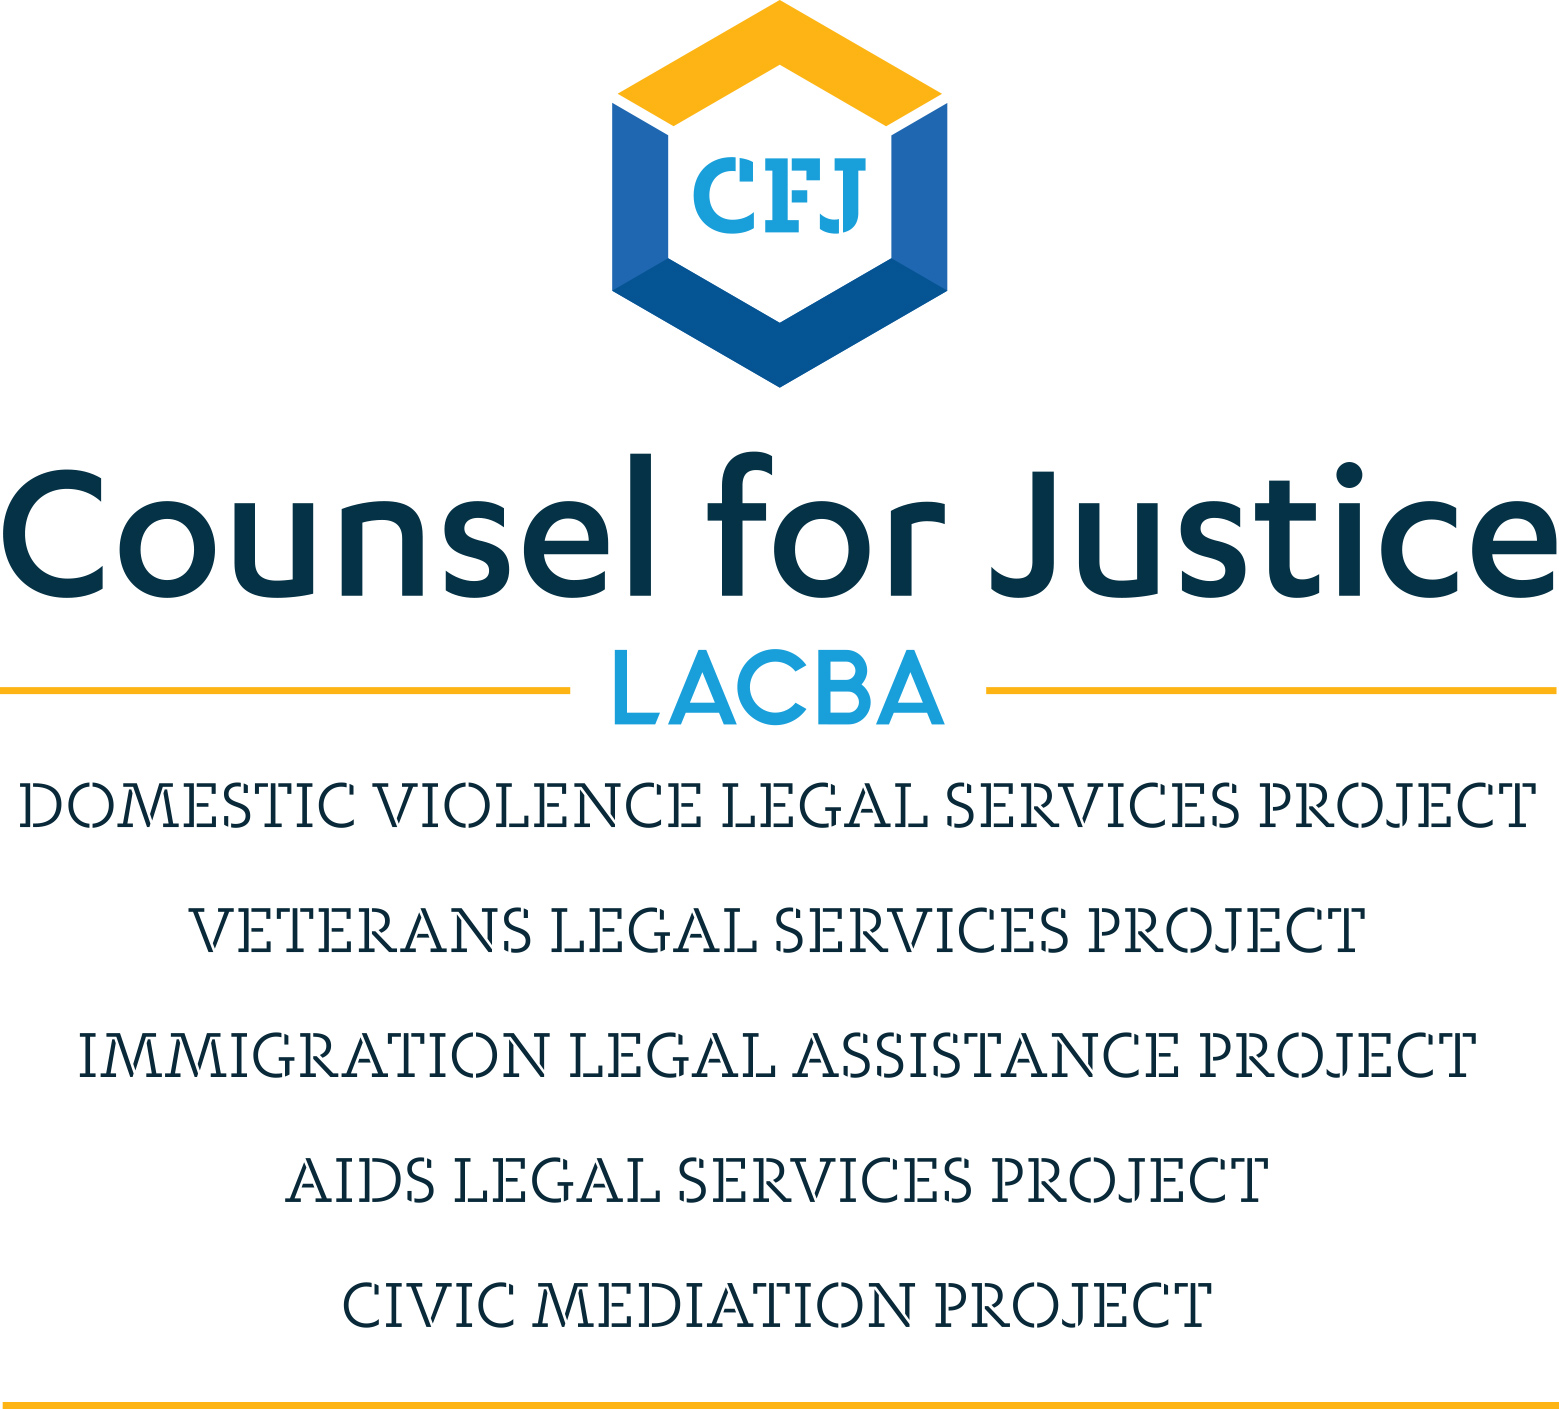 LACBA Counsel for Justice Projects